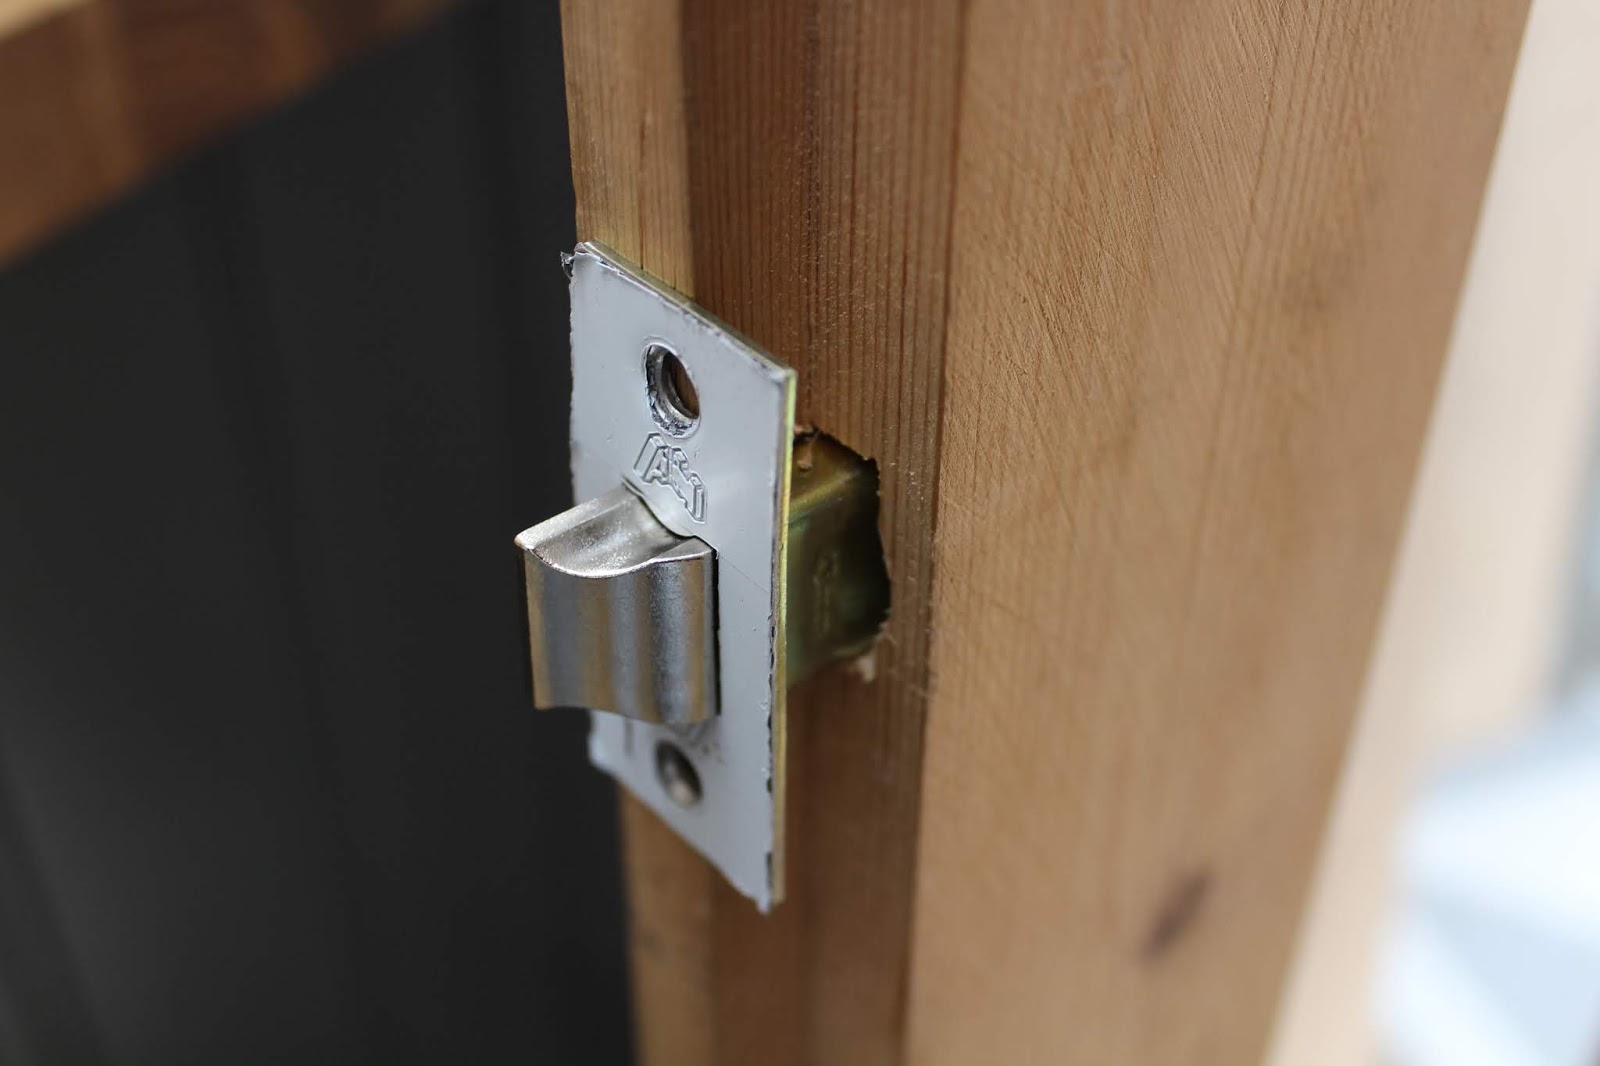 Rebated door latch on french door